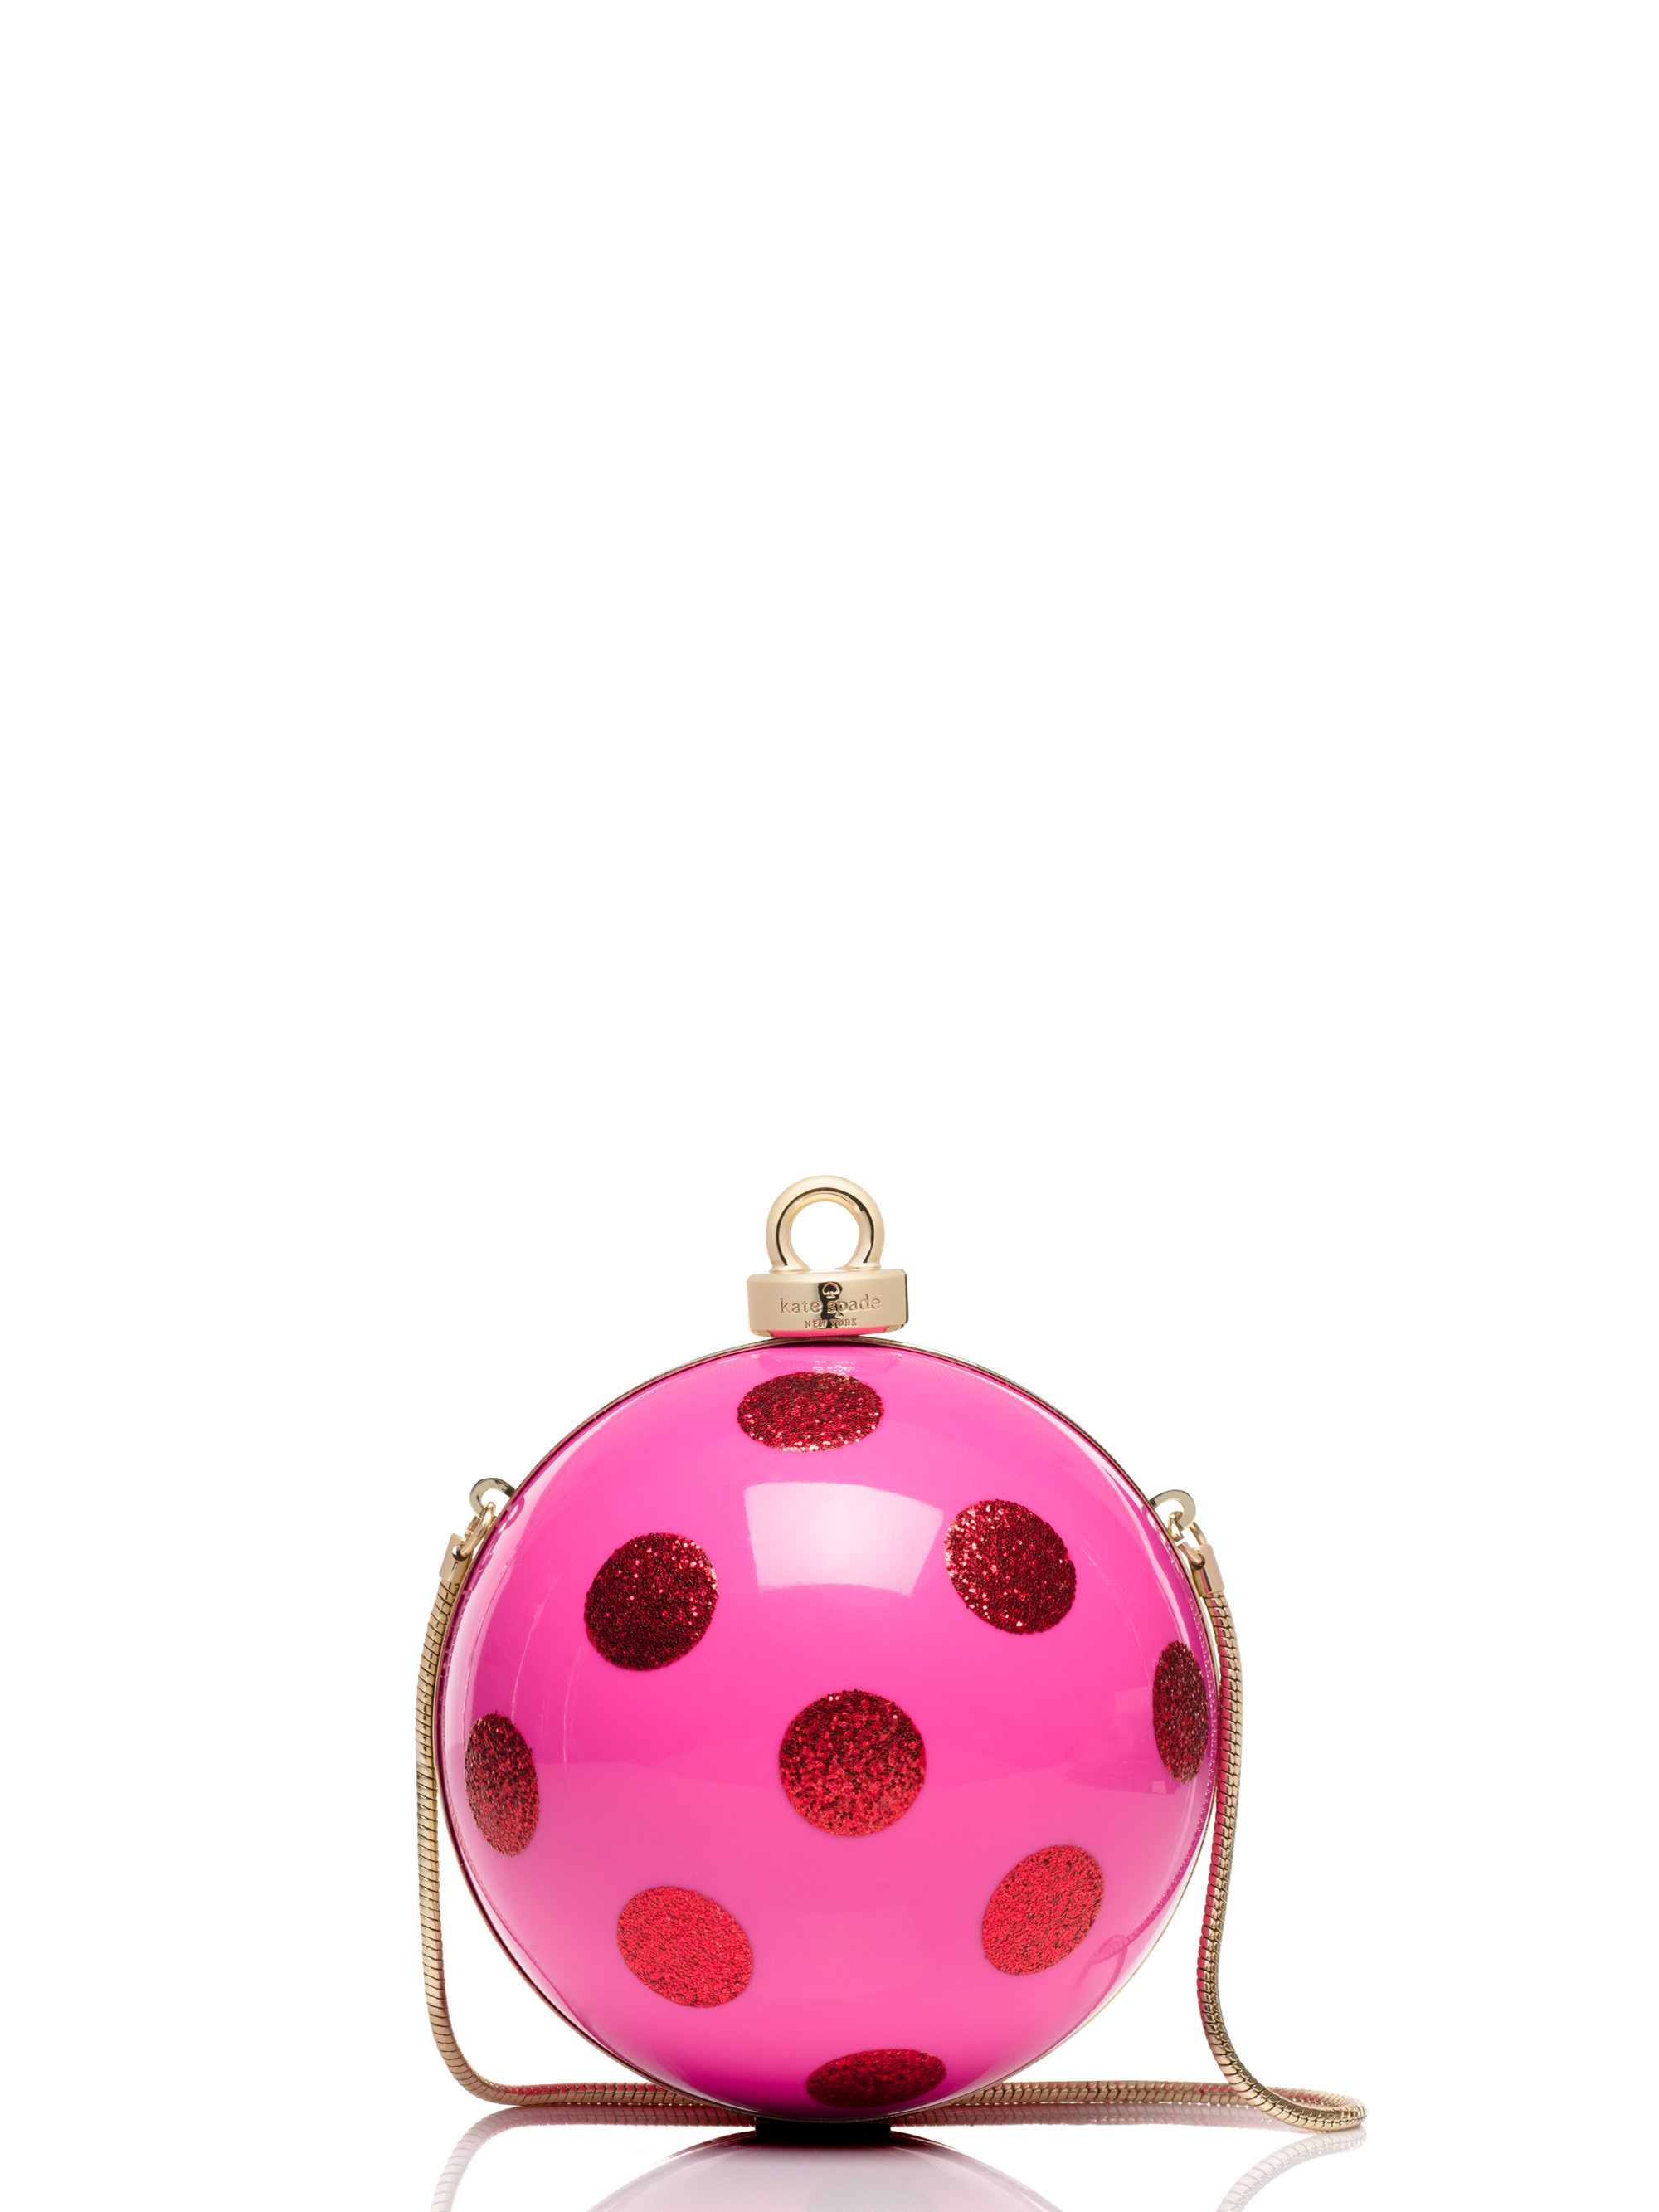 Lyst - Kate Spade New York Dot Ornament Clutch in Pink